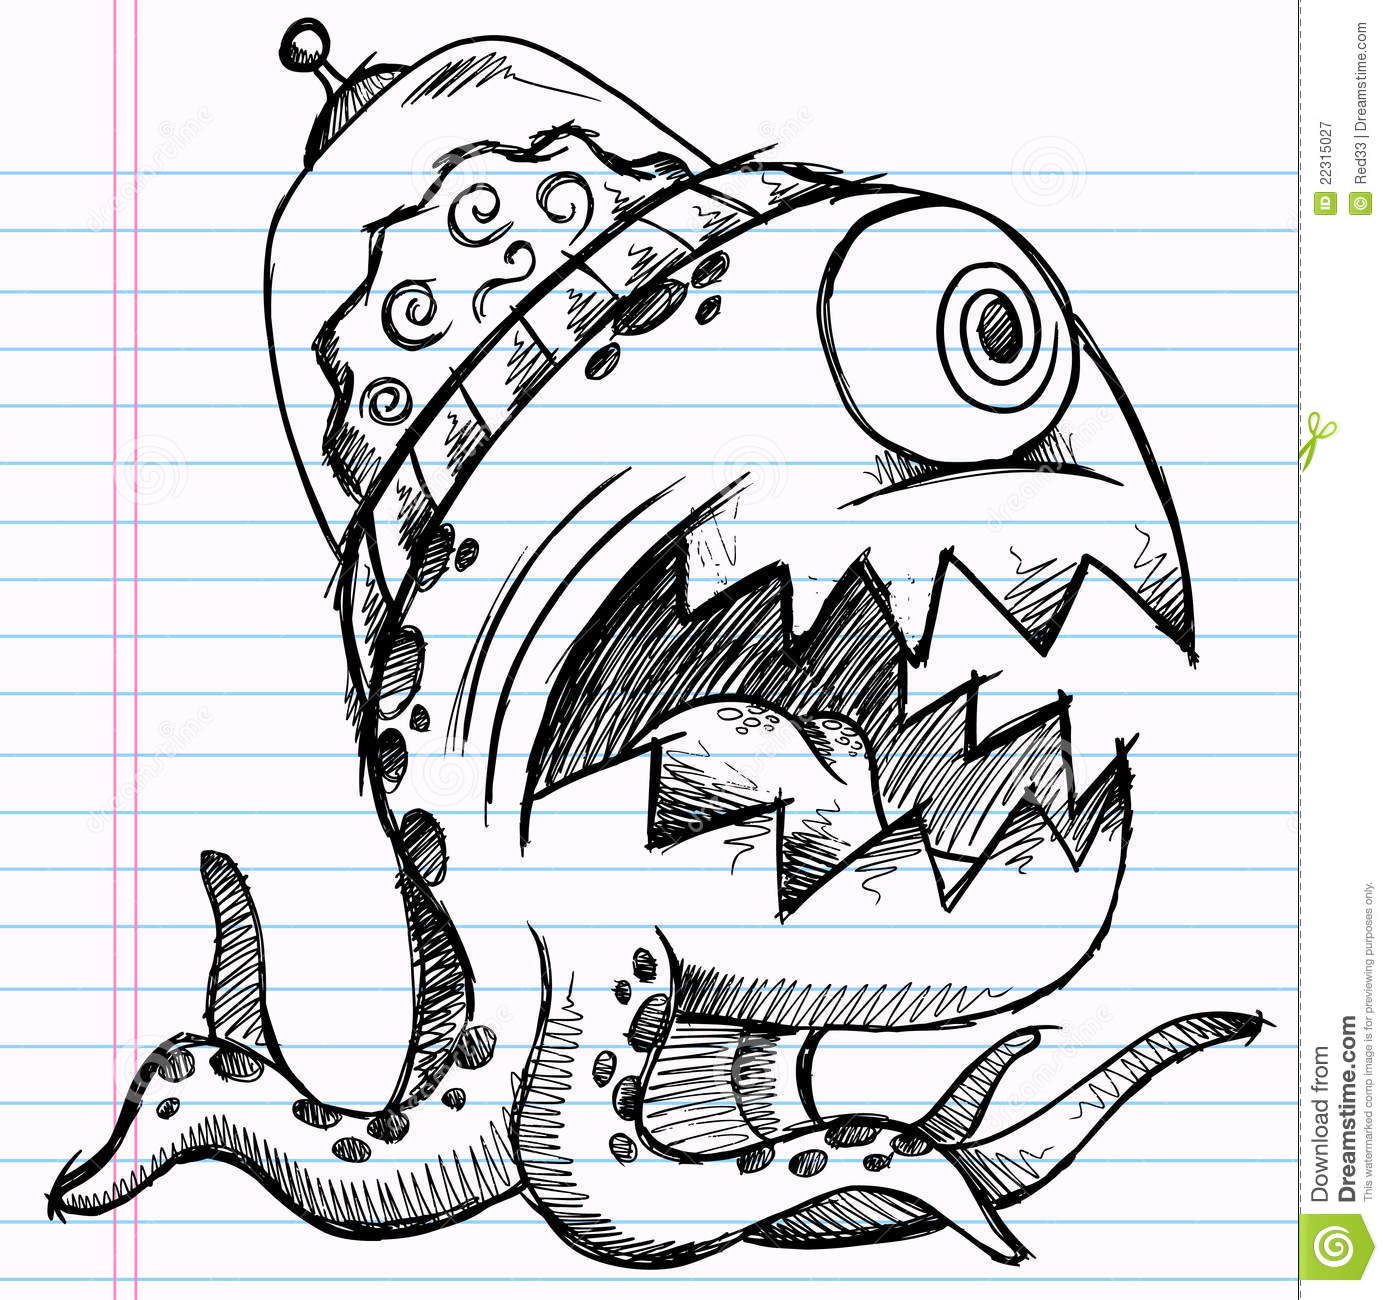 Notebook Doodle Sketch Alien Monster Royalty Free Stock